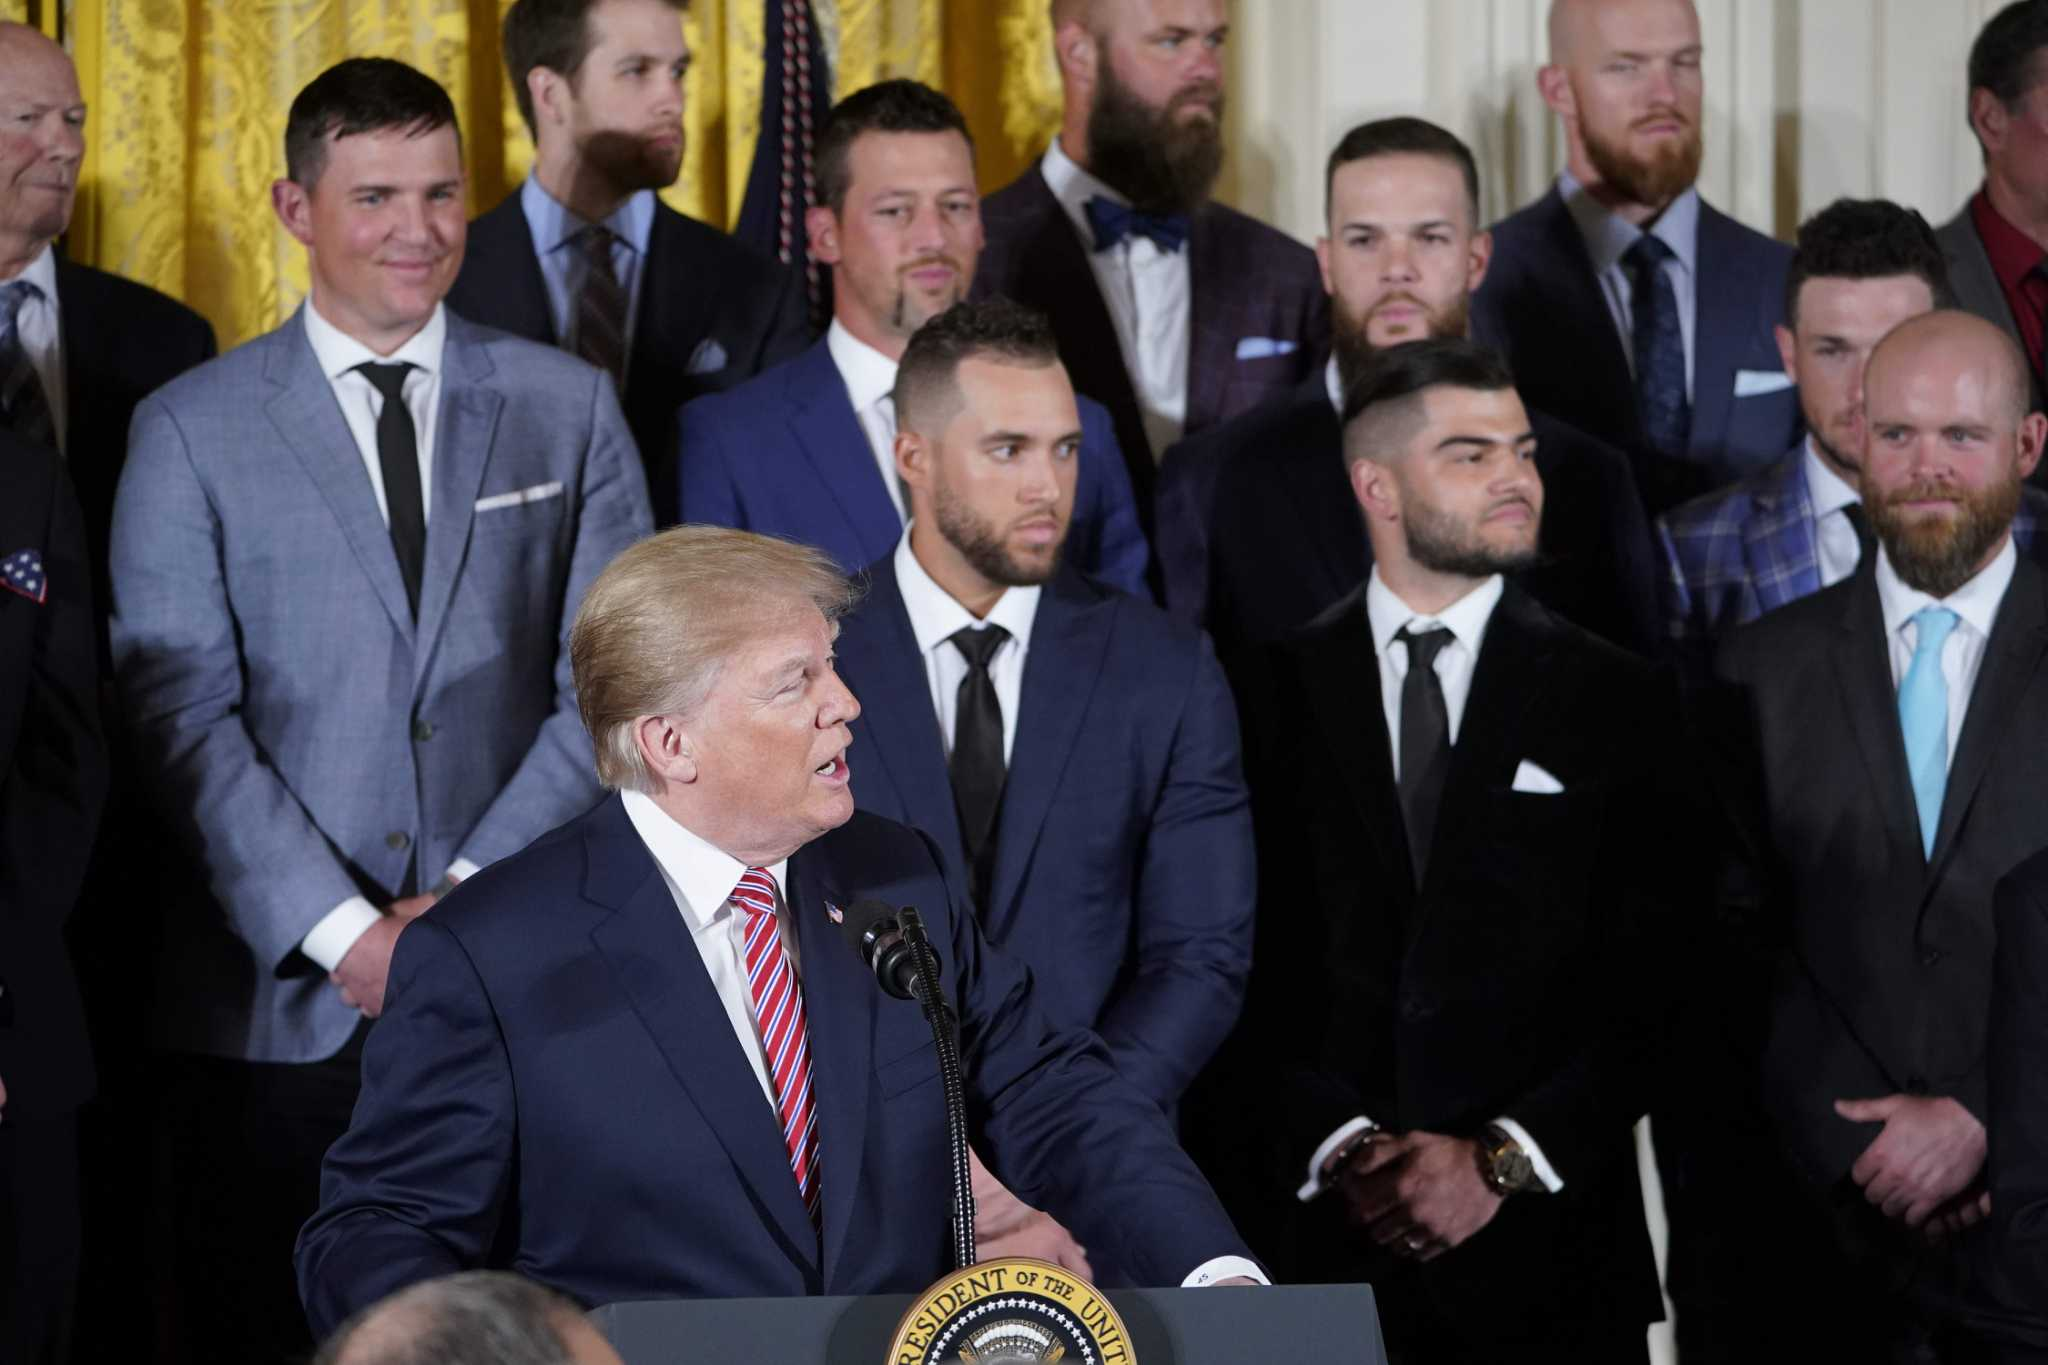 730a50c75 Watch video of the Astros  visit to the White House - Houston Chronicle